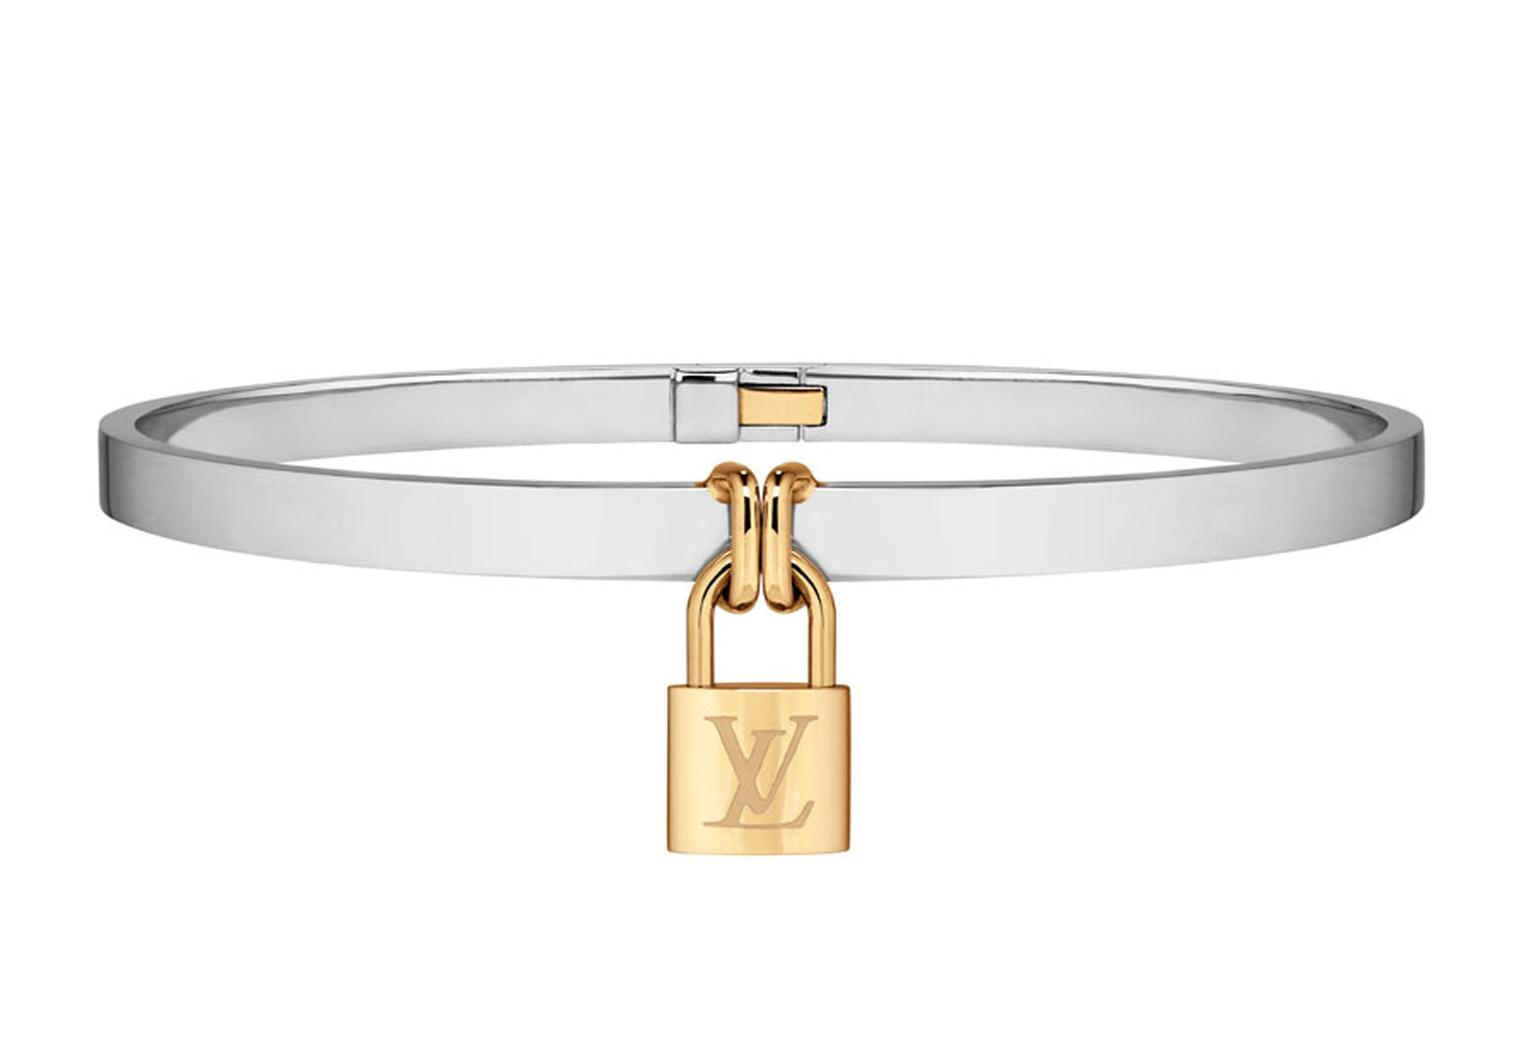 Louis-Vuitton-BRACELET-LOCKIT-BICO_Vue-de-face.jpg